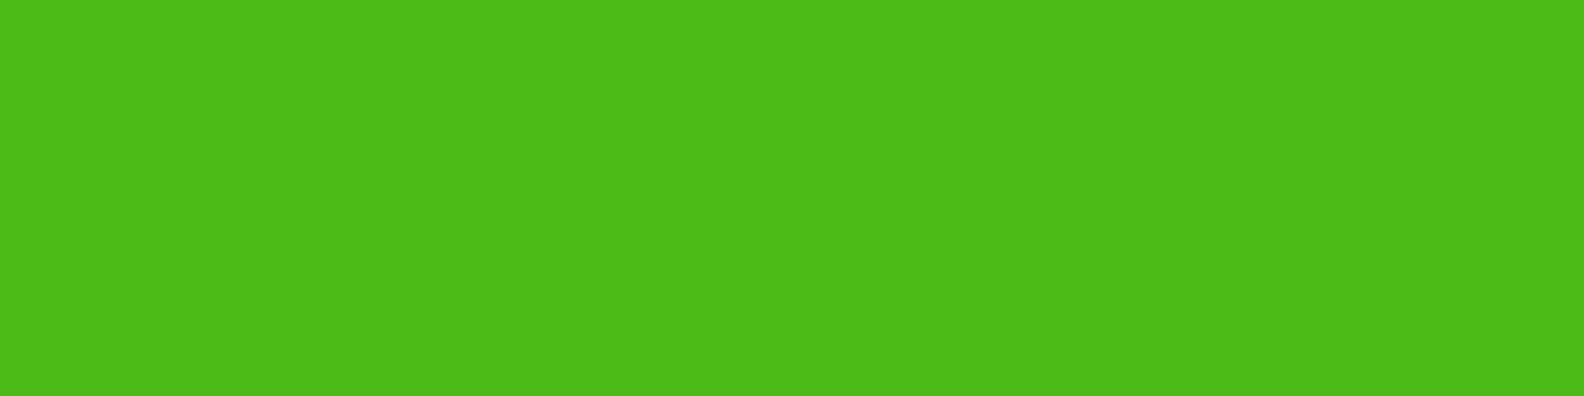 1584x396 Kelly Green Solid Color Background